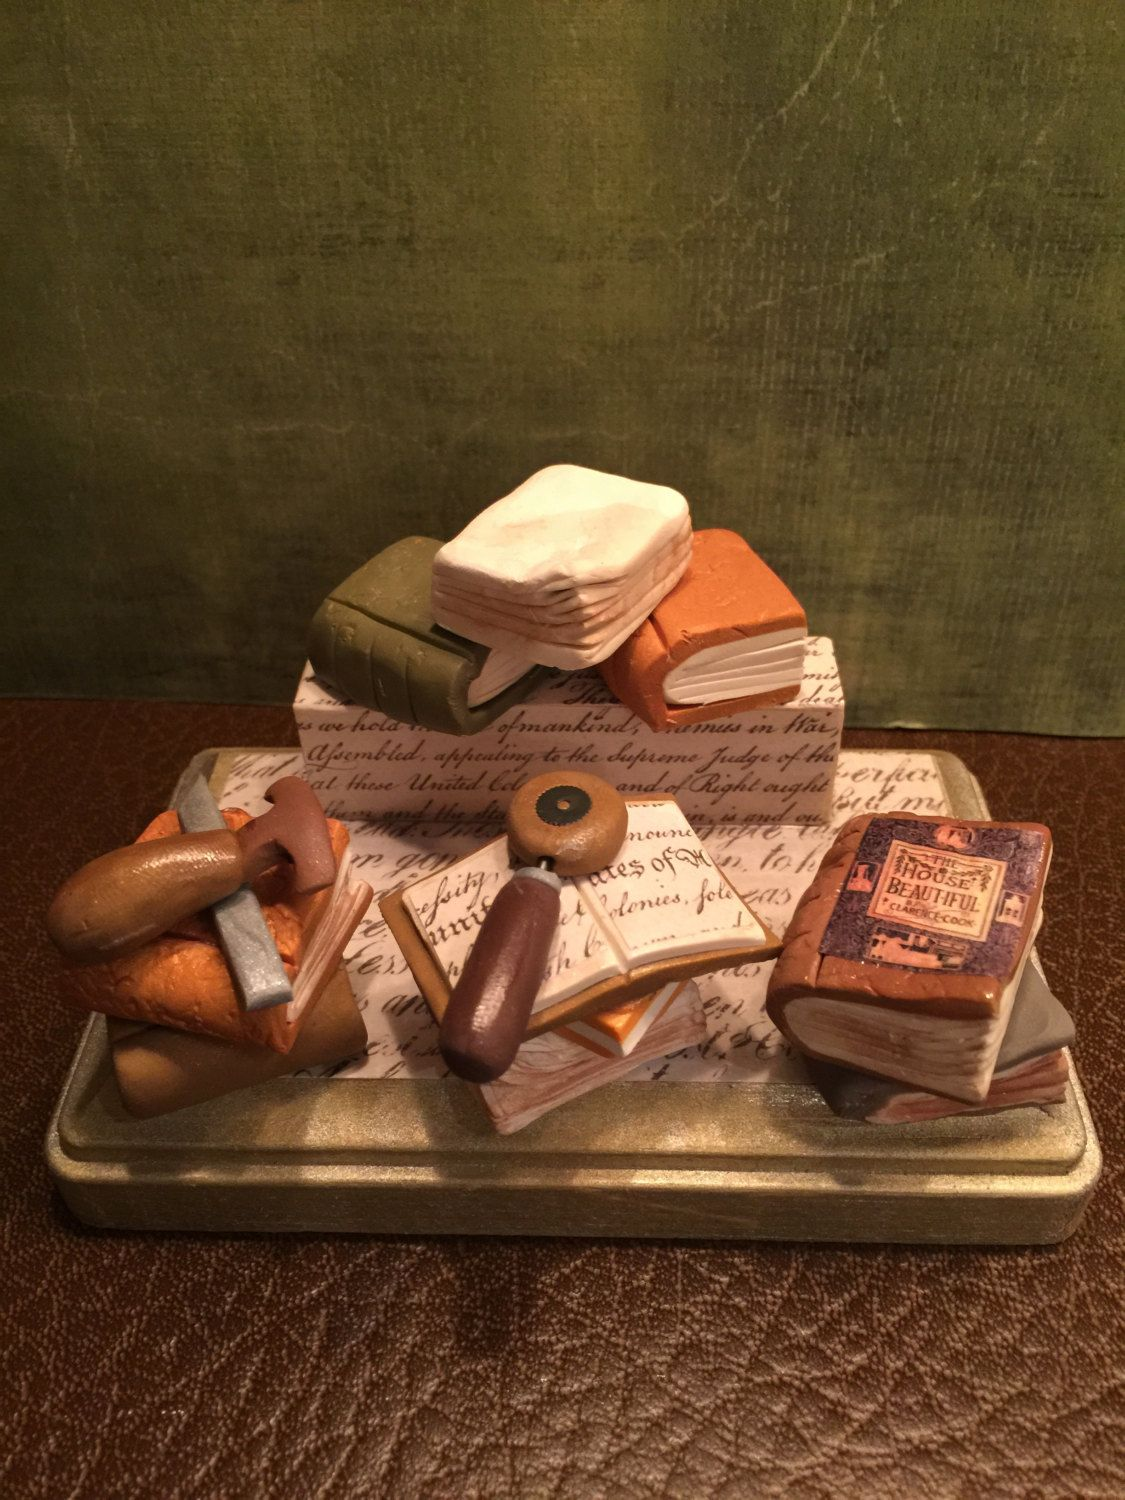 Polymer clay business card holder for someone who restores old ...